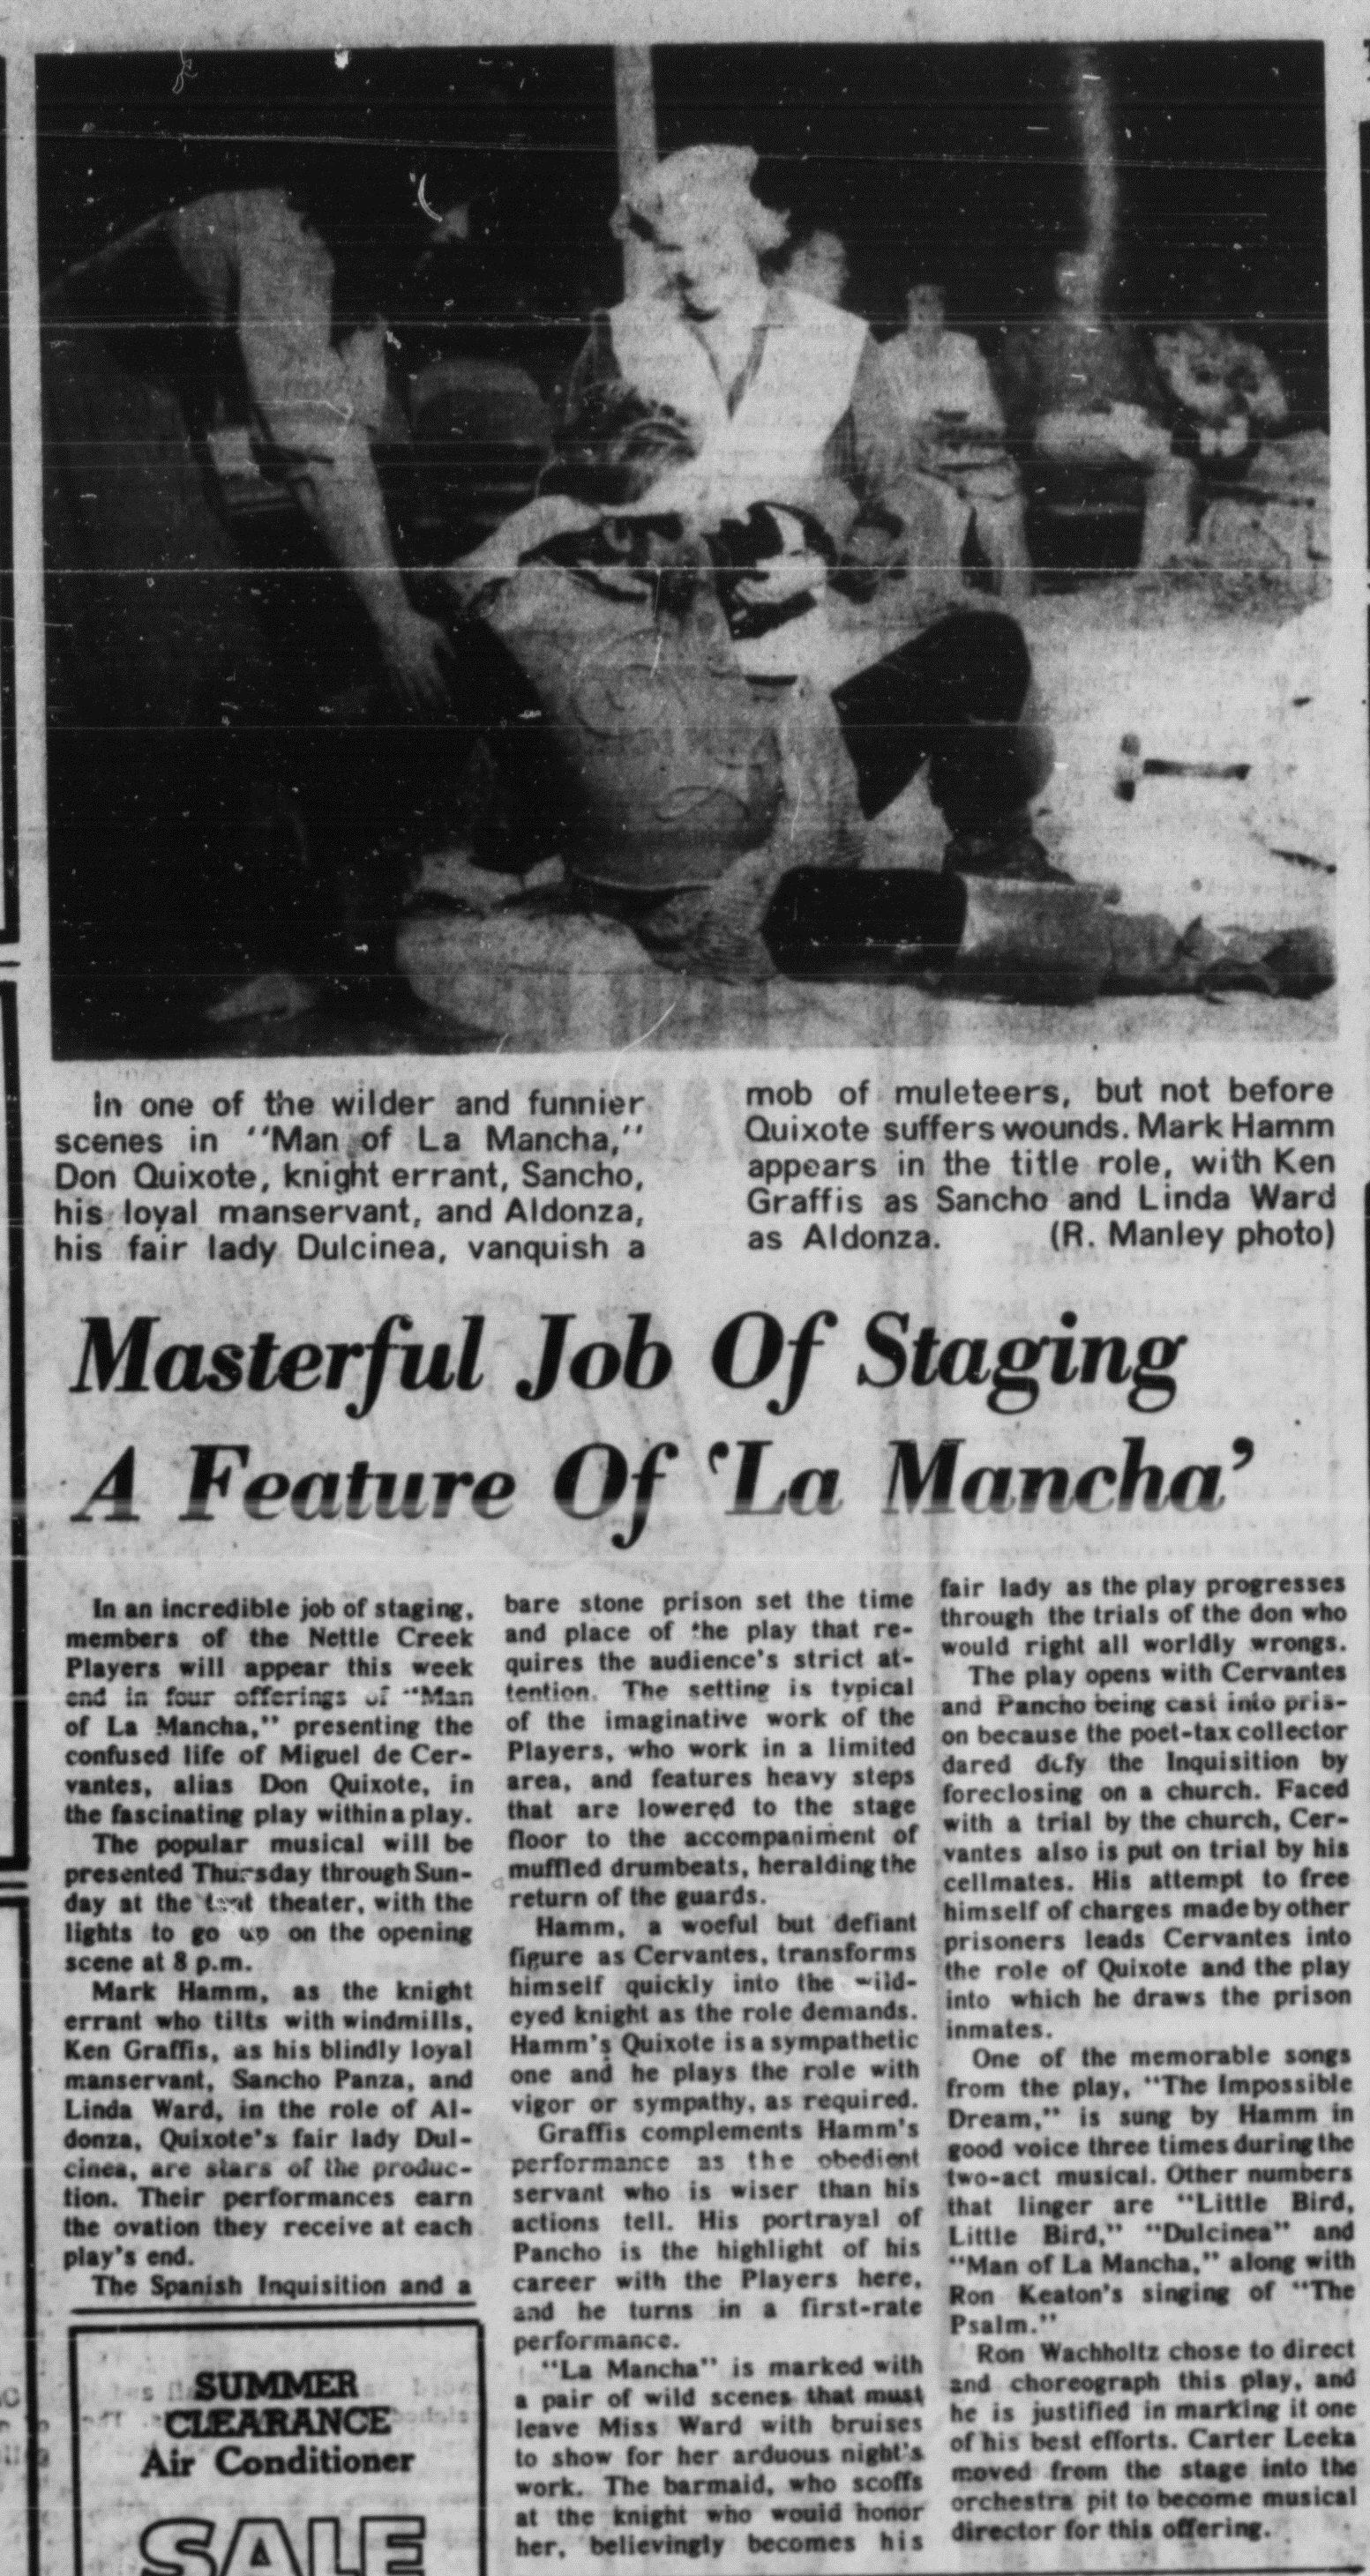 August 1975 La Manch Review